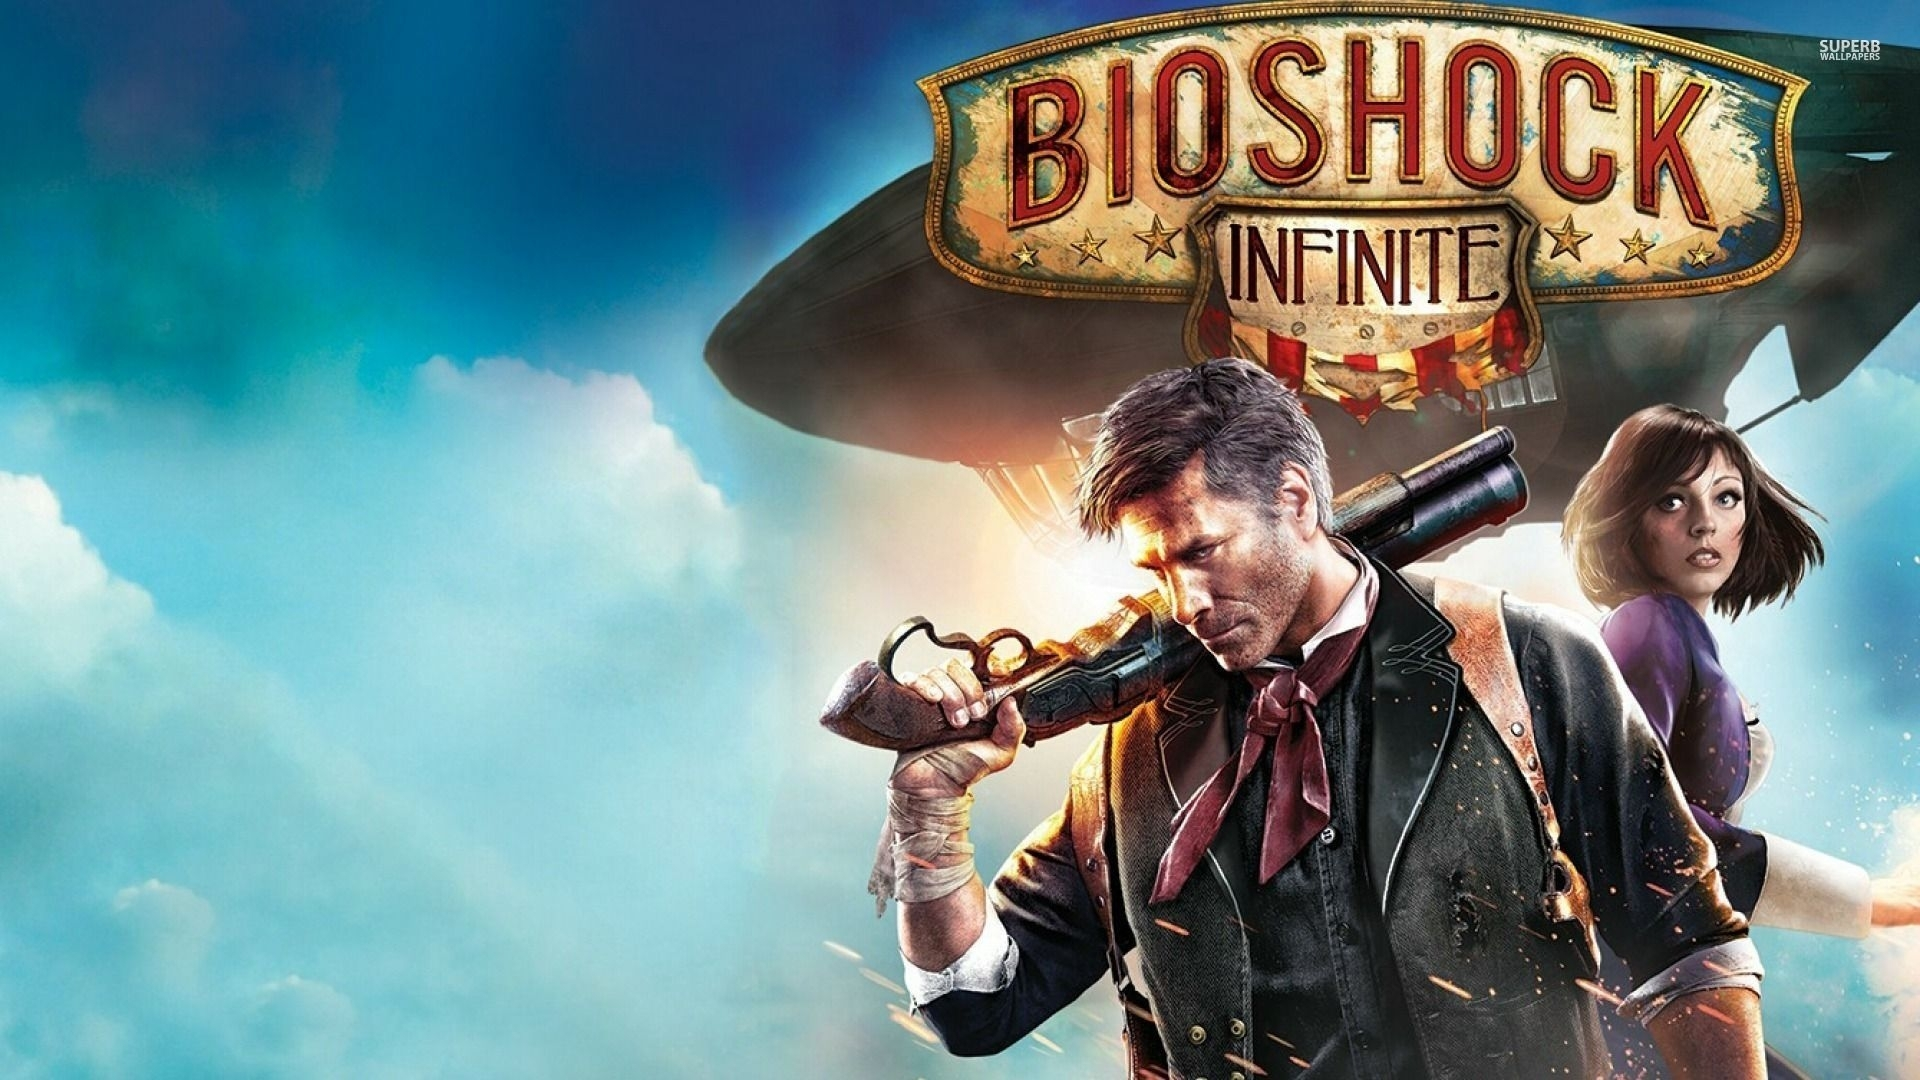 43+ bioshock infinite wallpaper